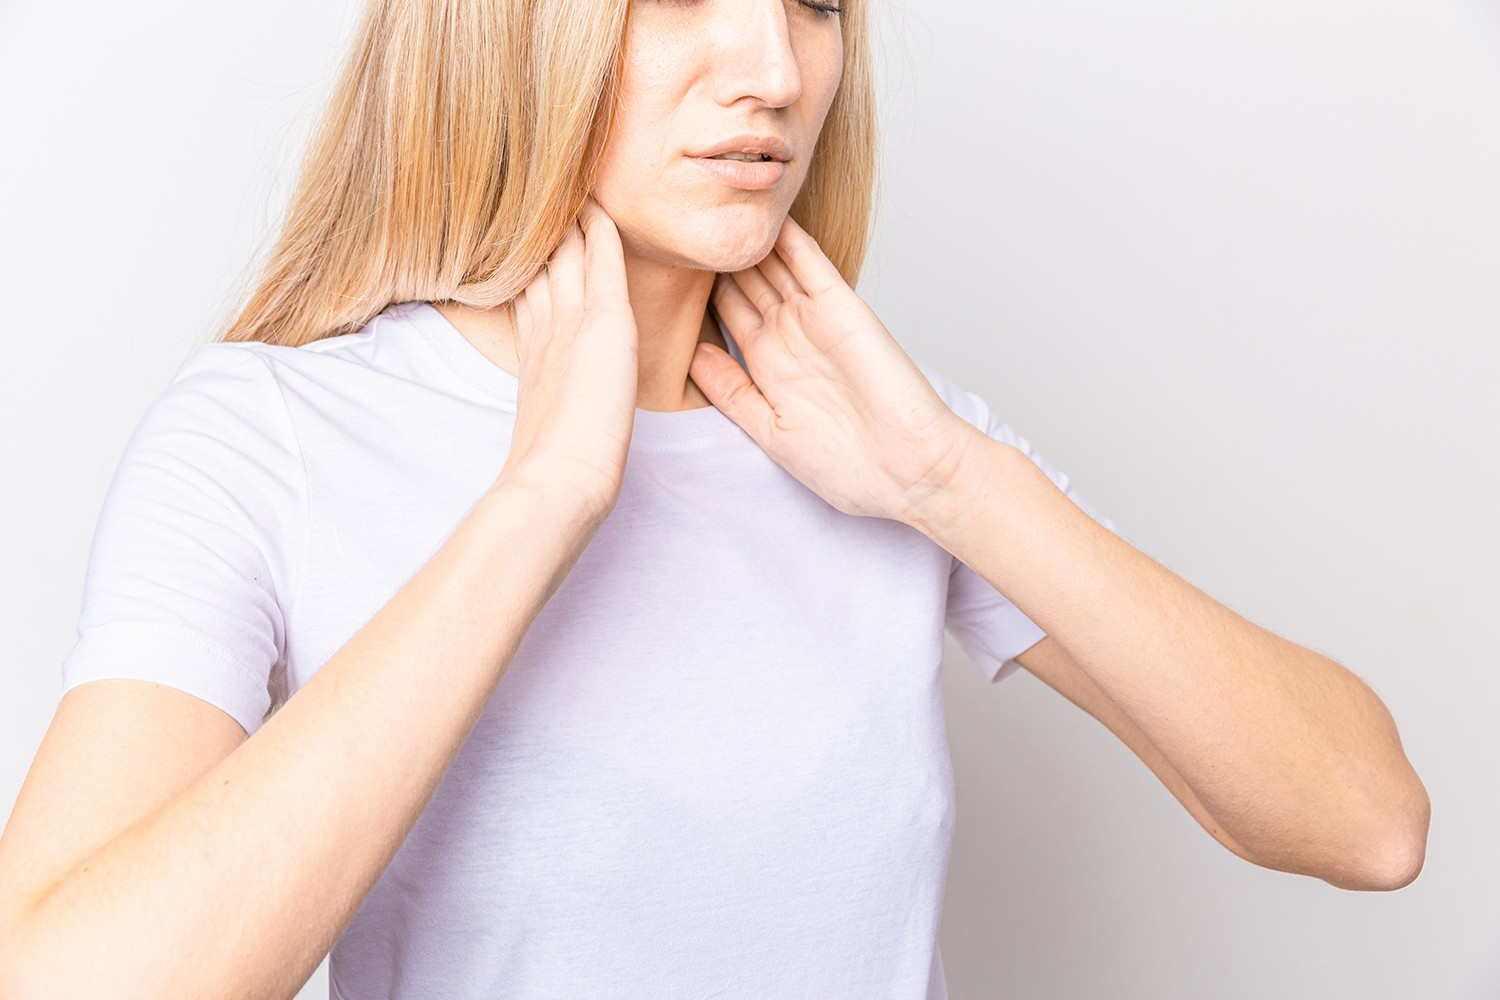 female checking thyroid gland by herself close up woman white t shirt touching neck with red spot thyroid disorder includes goiter hyperthyroid hypothyroid tumor cancer health care